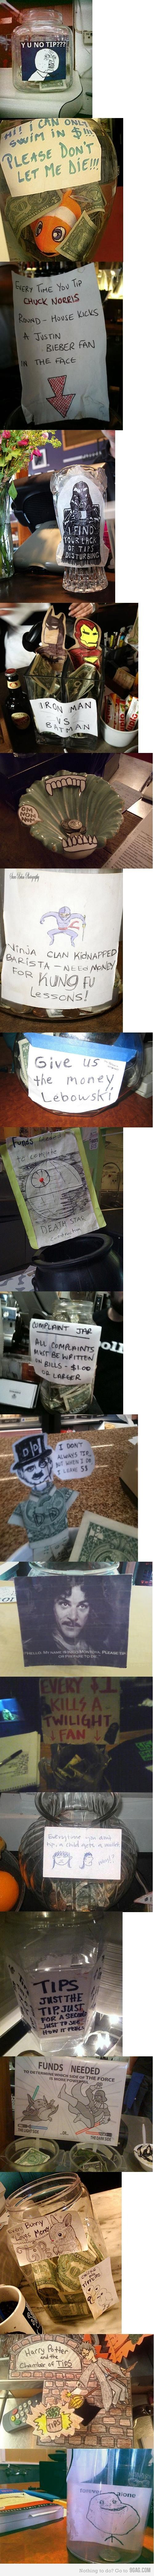 If more Tip jars did this (namely Batman vs Iron Man) I would tip like I was paying for the whole thing.